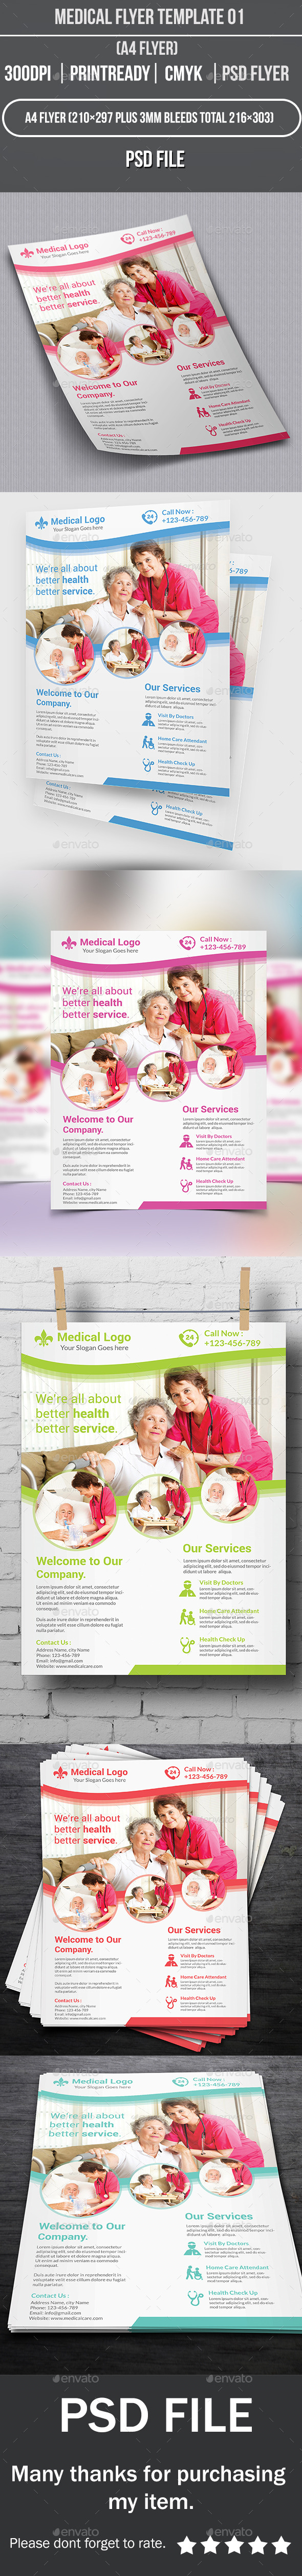 GraphicRiver Medical Flyer Template 01 10280636